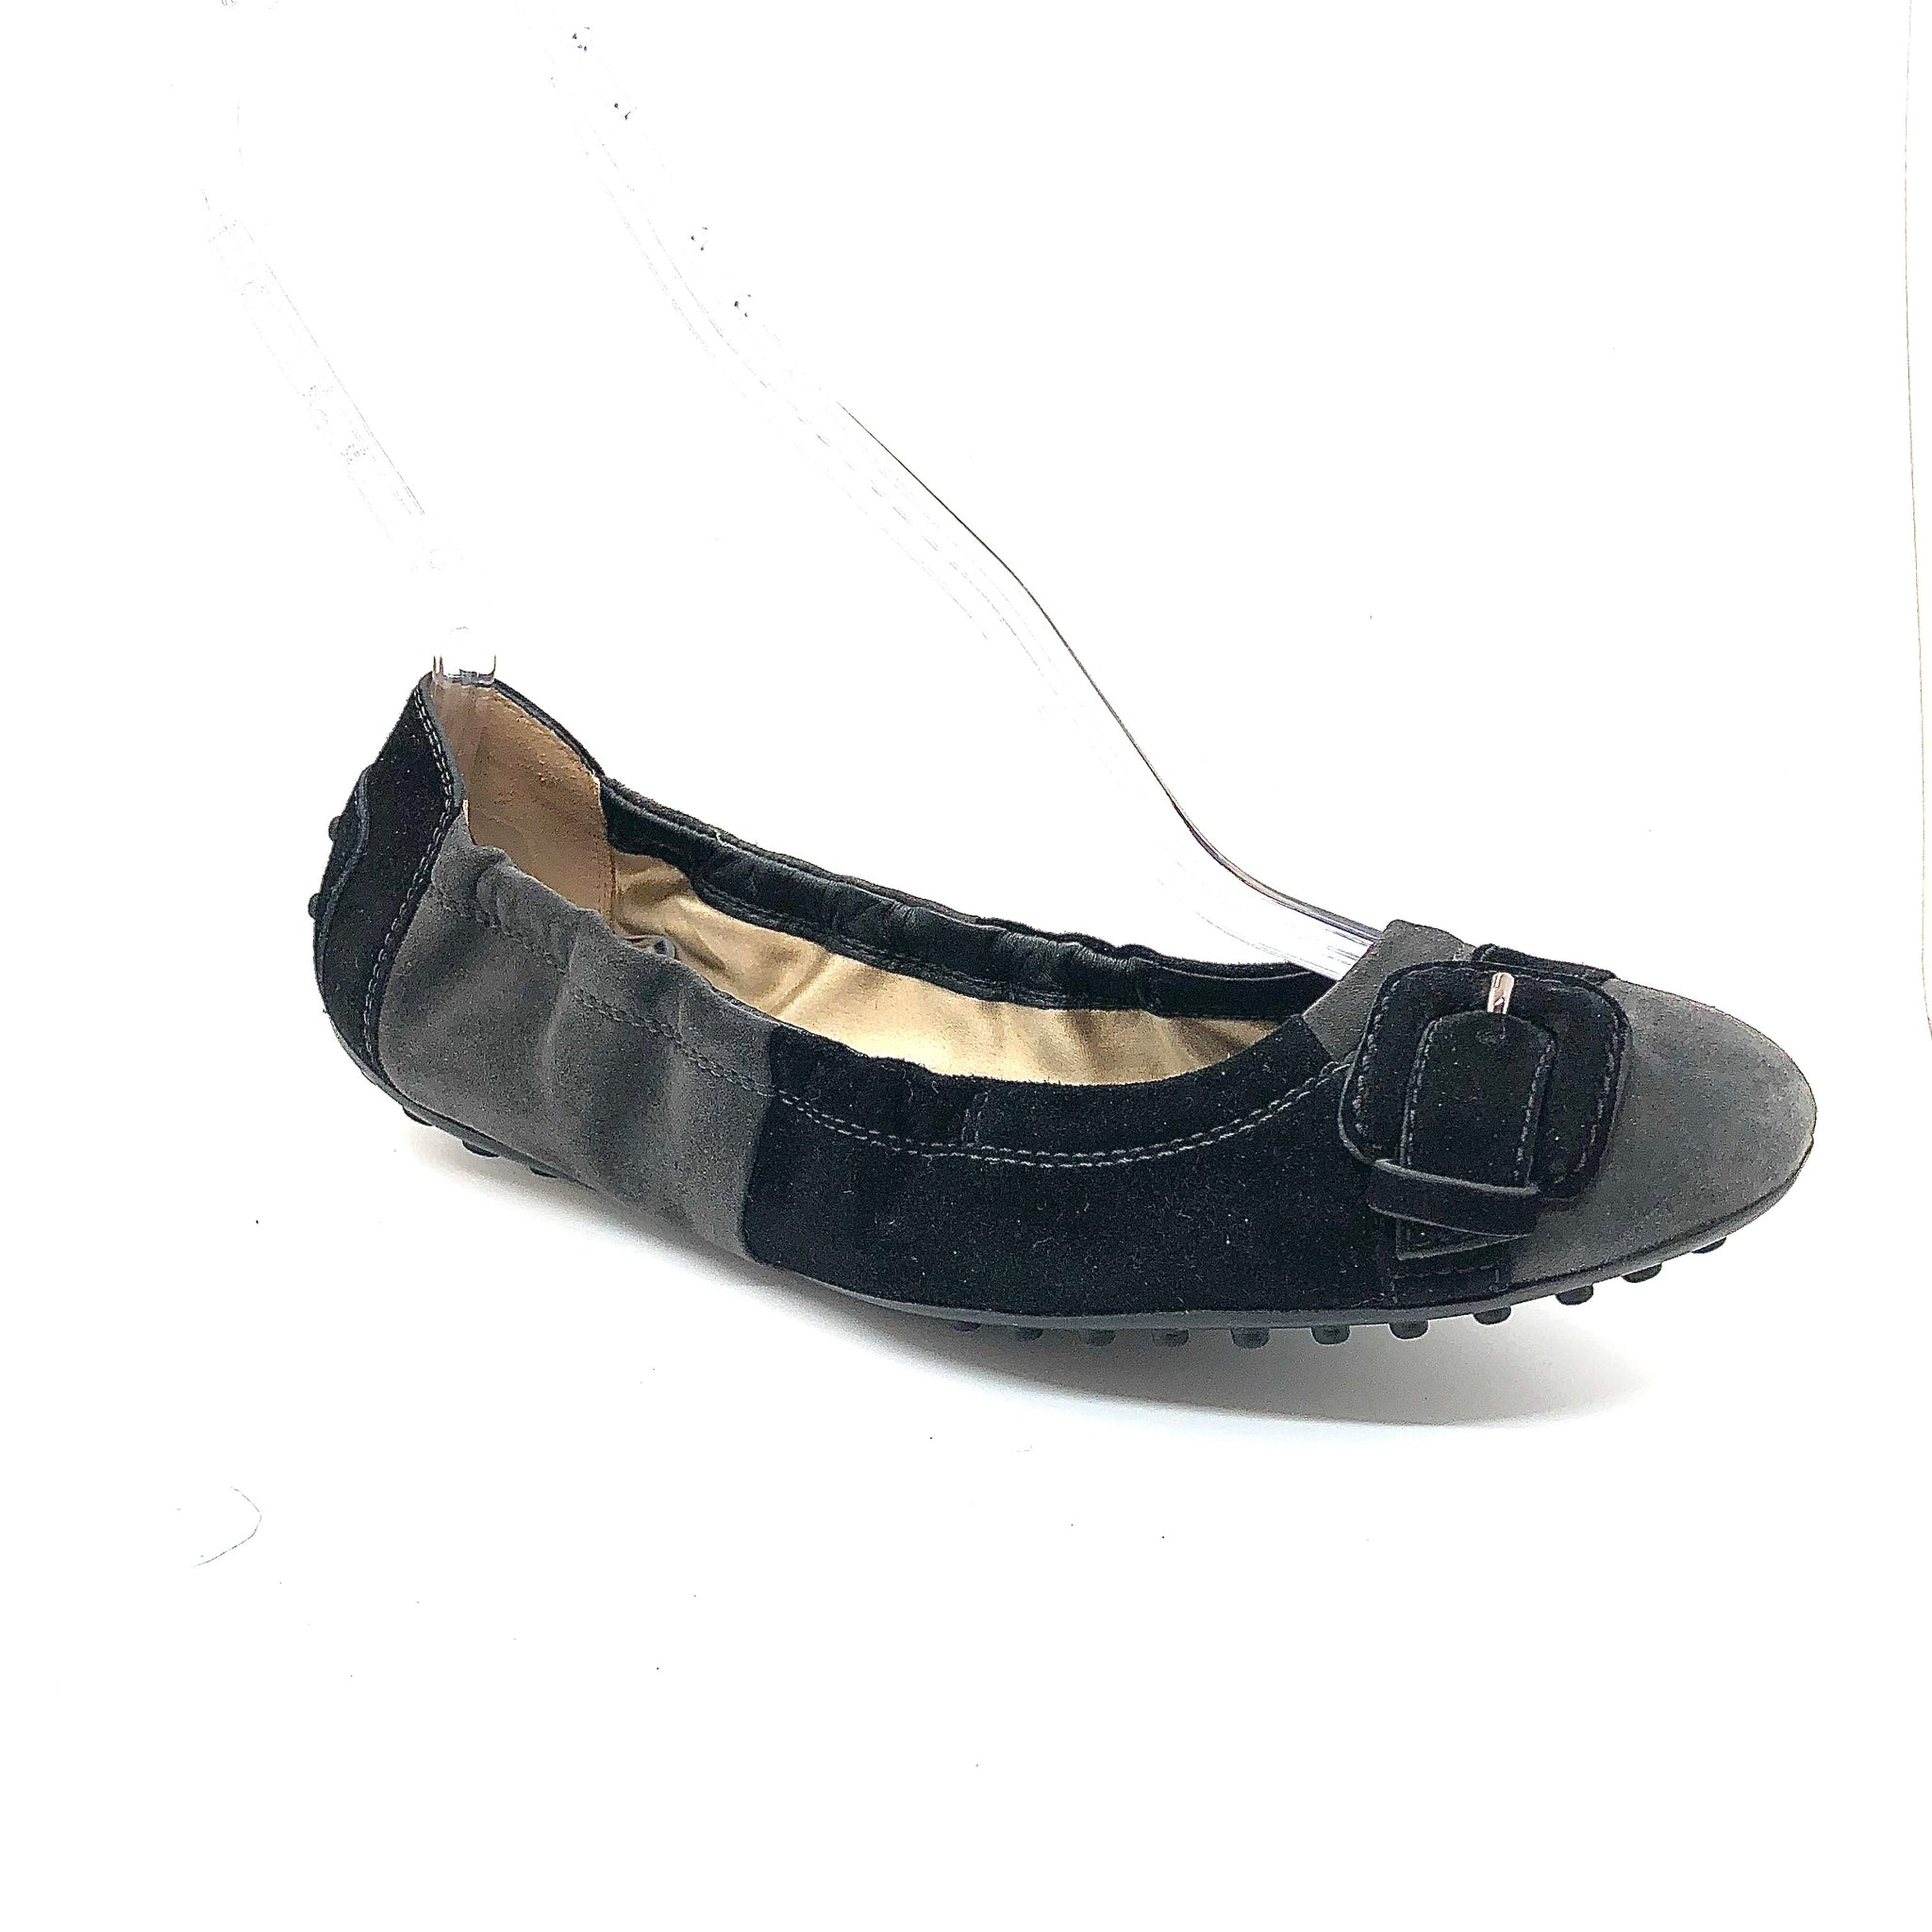 Tods Black Size 38 Women's Shoes